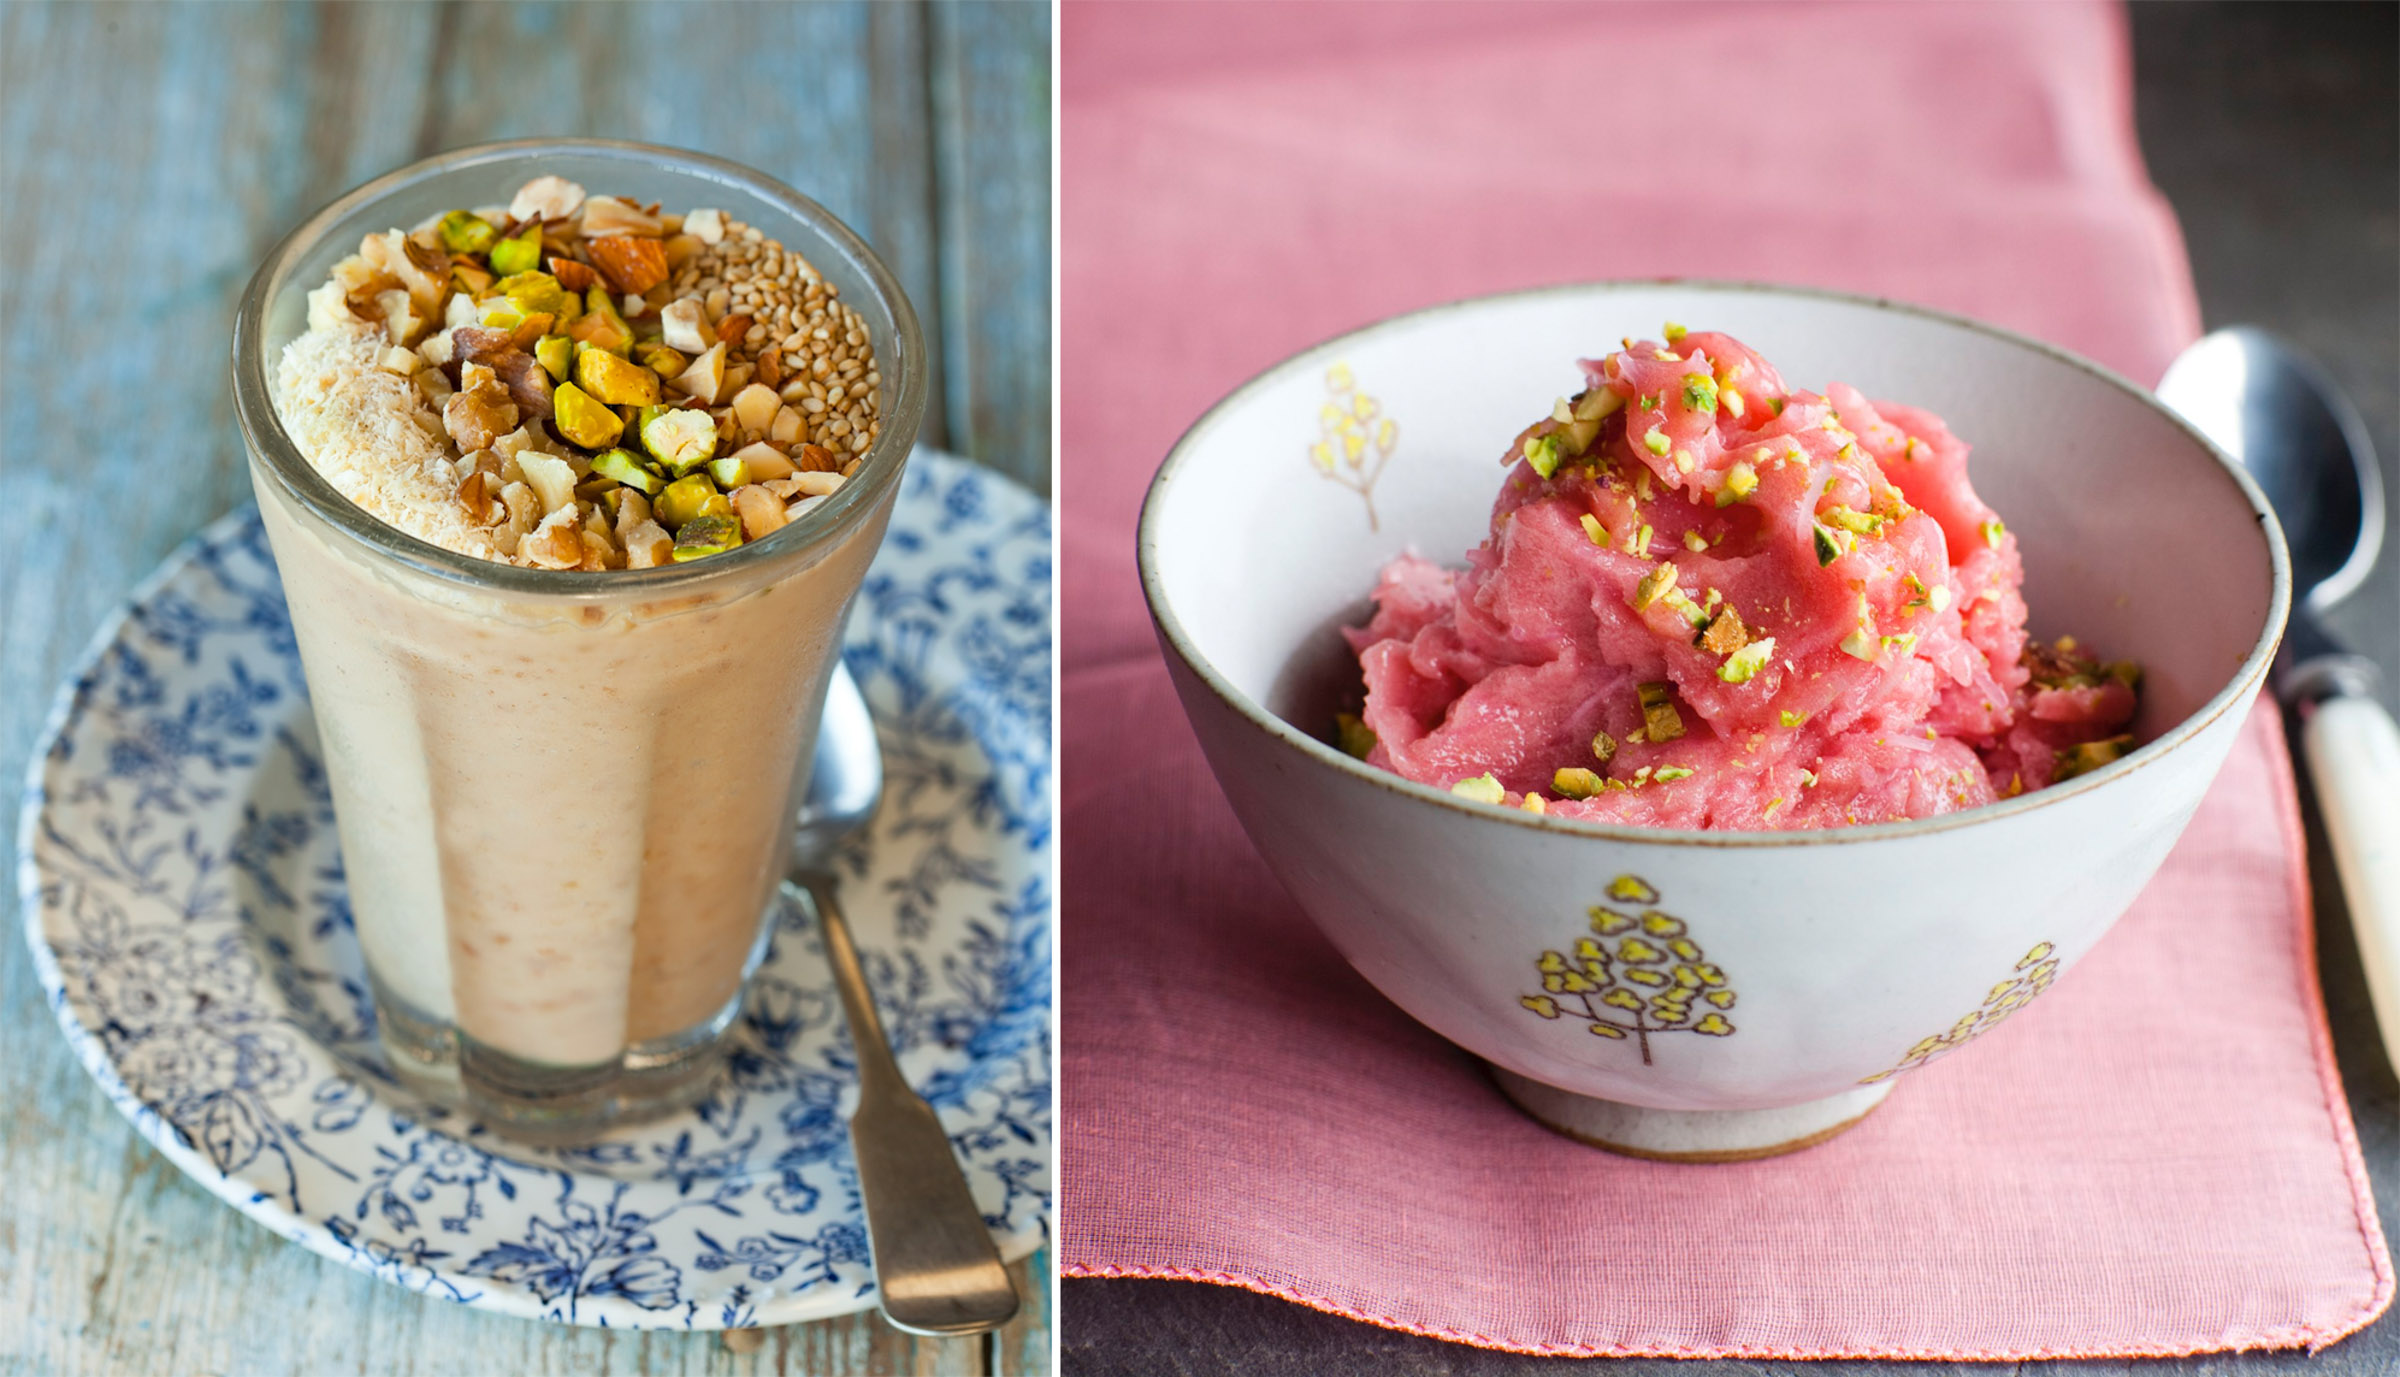 New Persian Kitchen:Date shake + Rhubarb sorbet